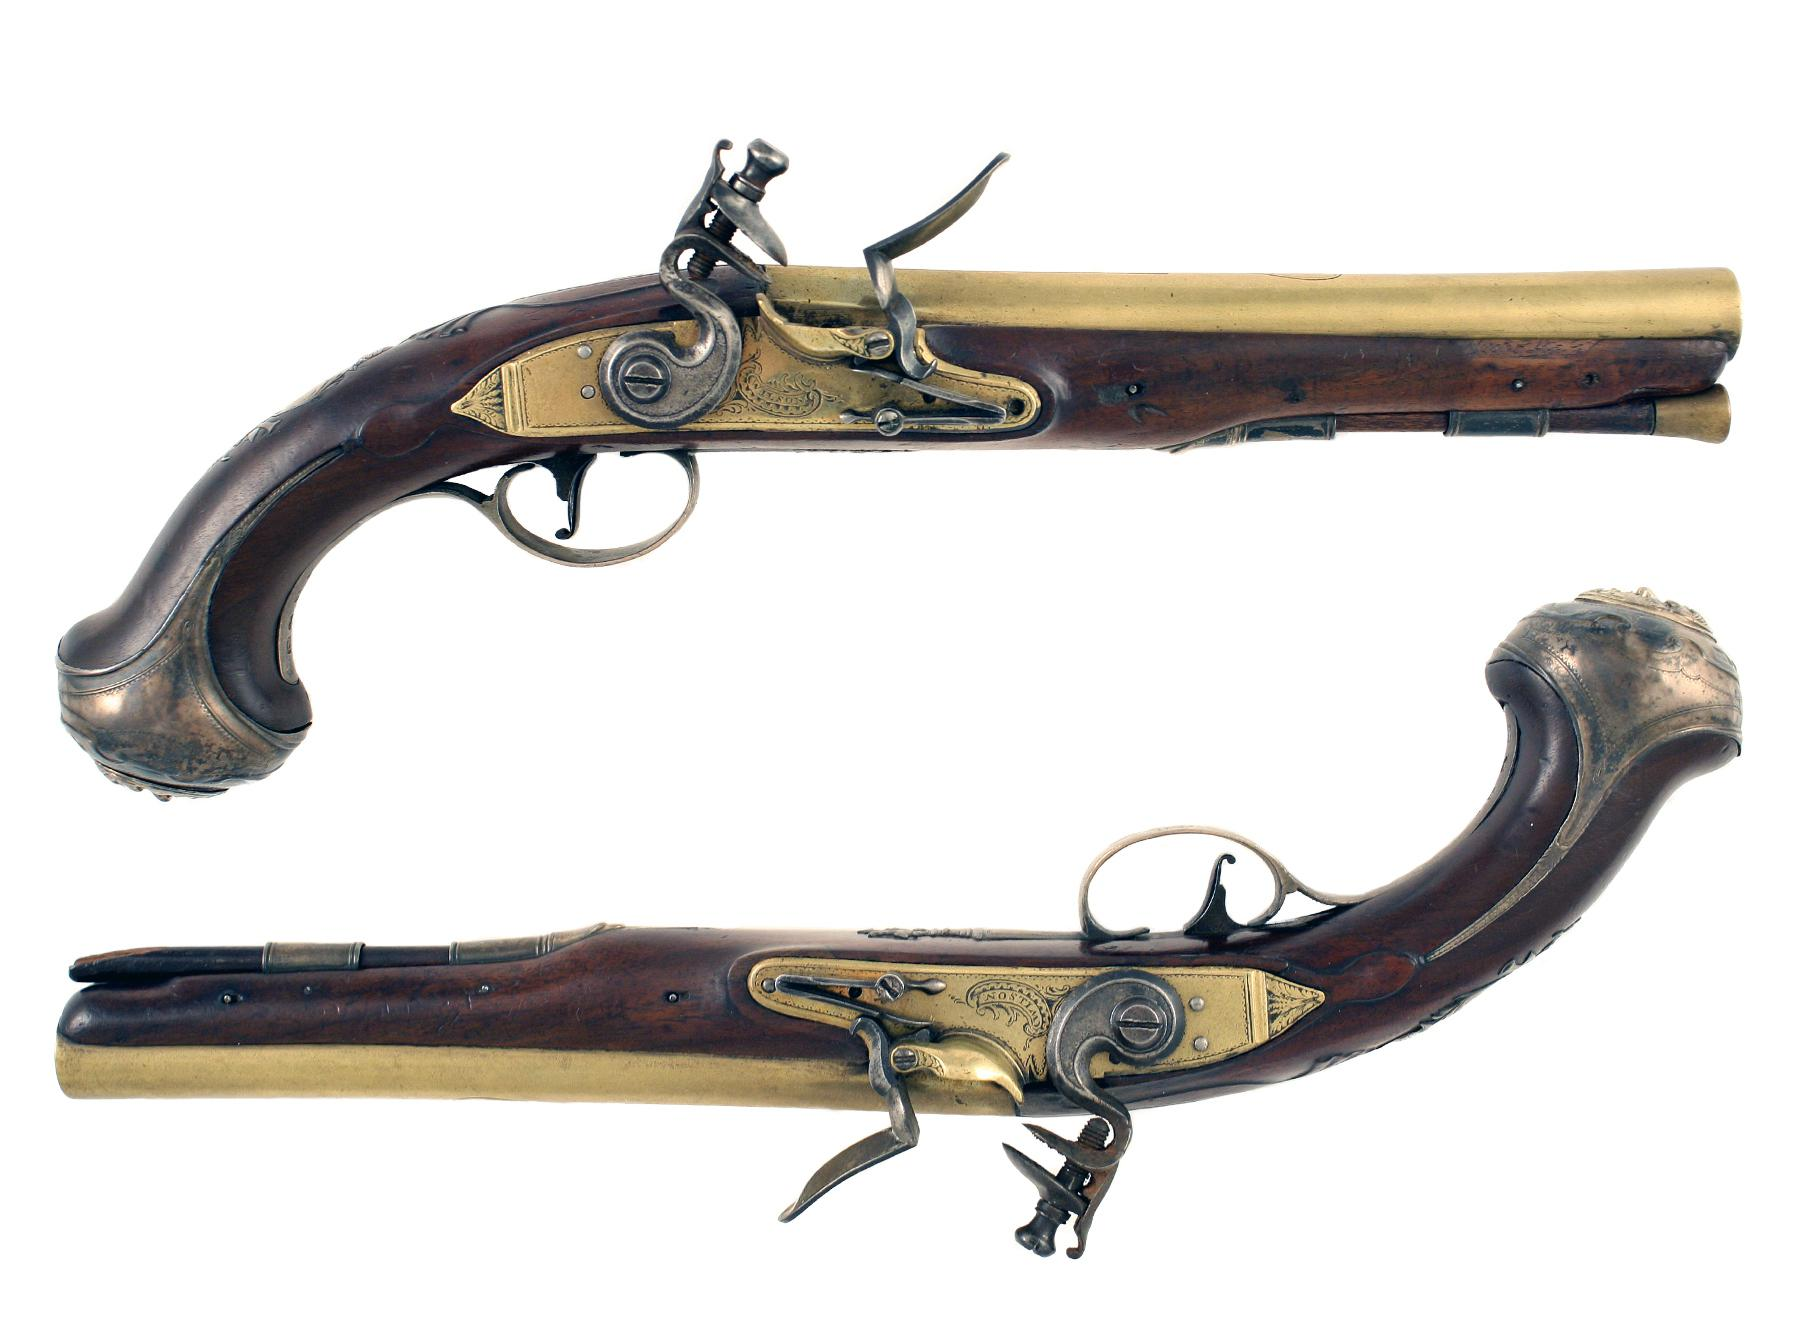 An Untouched Pair of Pistols